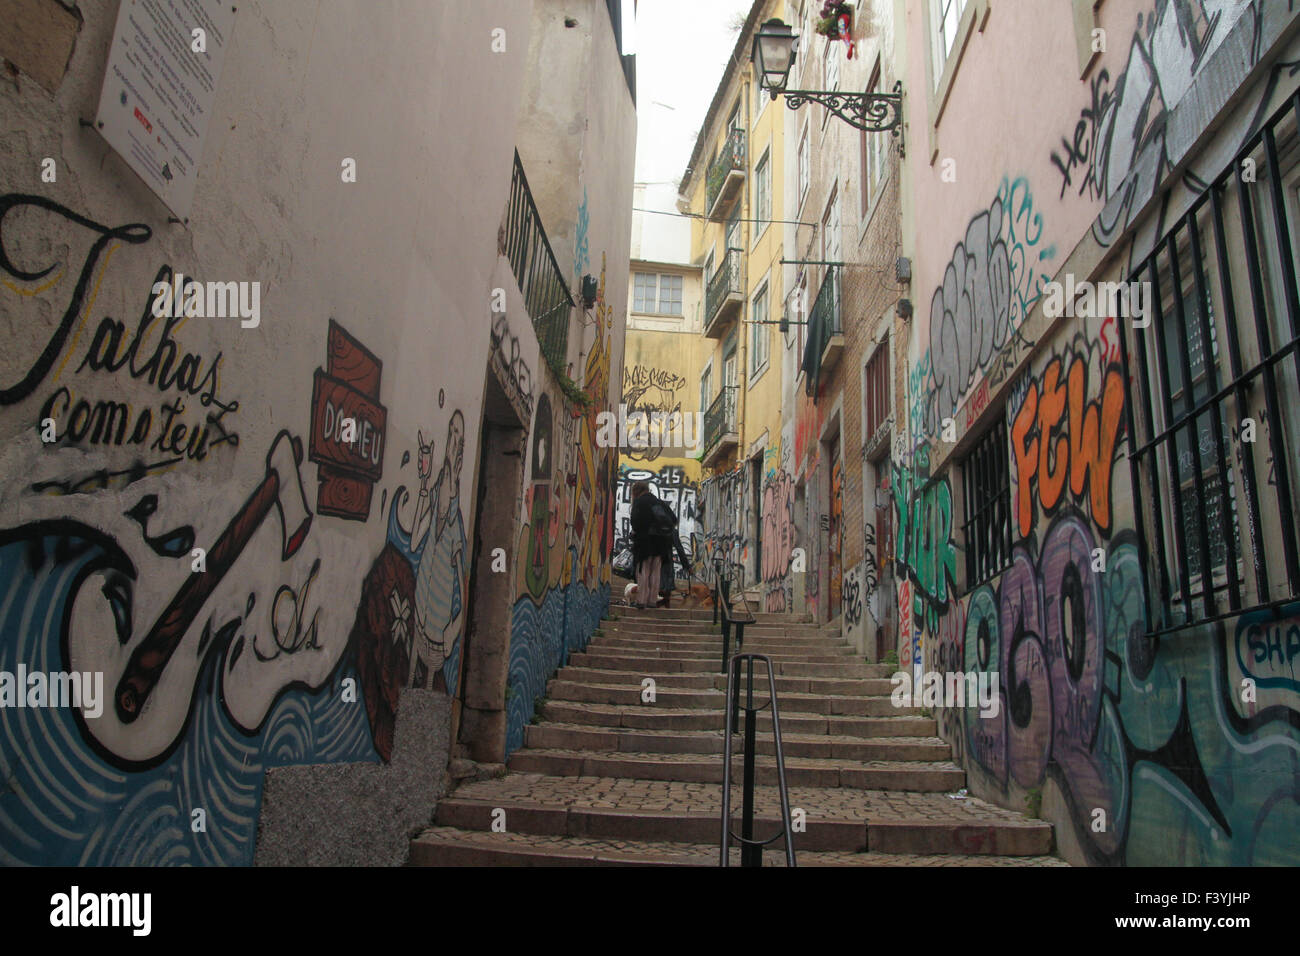 ​Lisbon, Portugal, 4 October, 2015. Murals/ graffiti on the was of the Largo São Cristóvão  midway - Stock Image